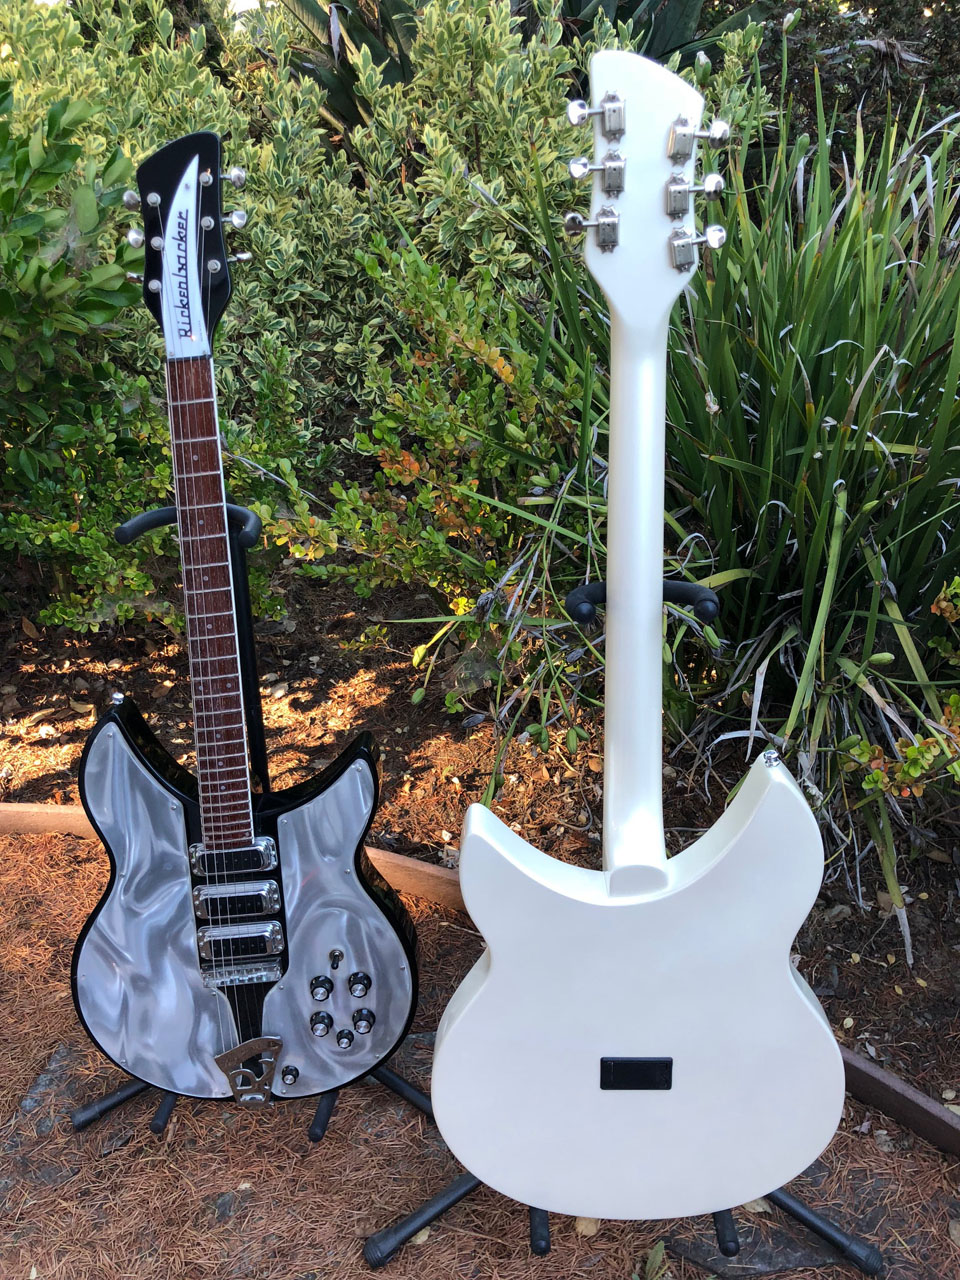 ...THE PEARL WHITE'S BATTERY BOX REVEALS ITS SOLID STATE NATURE